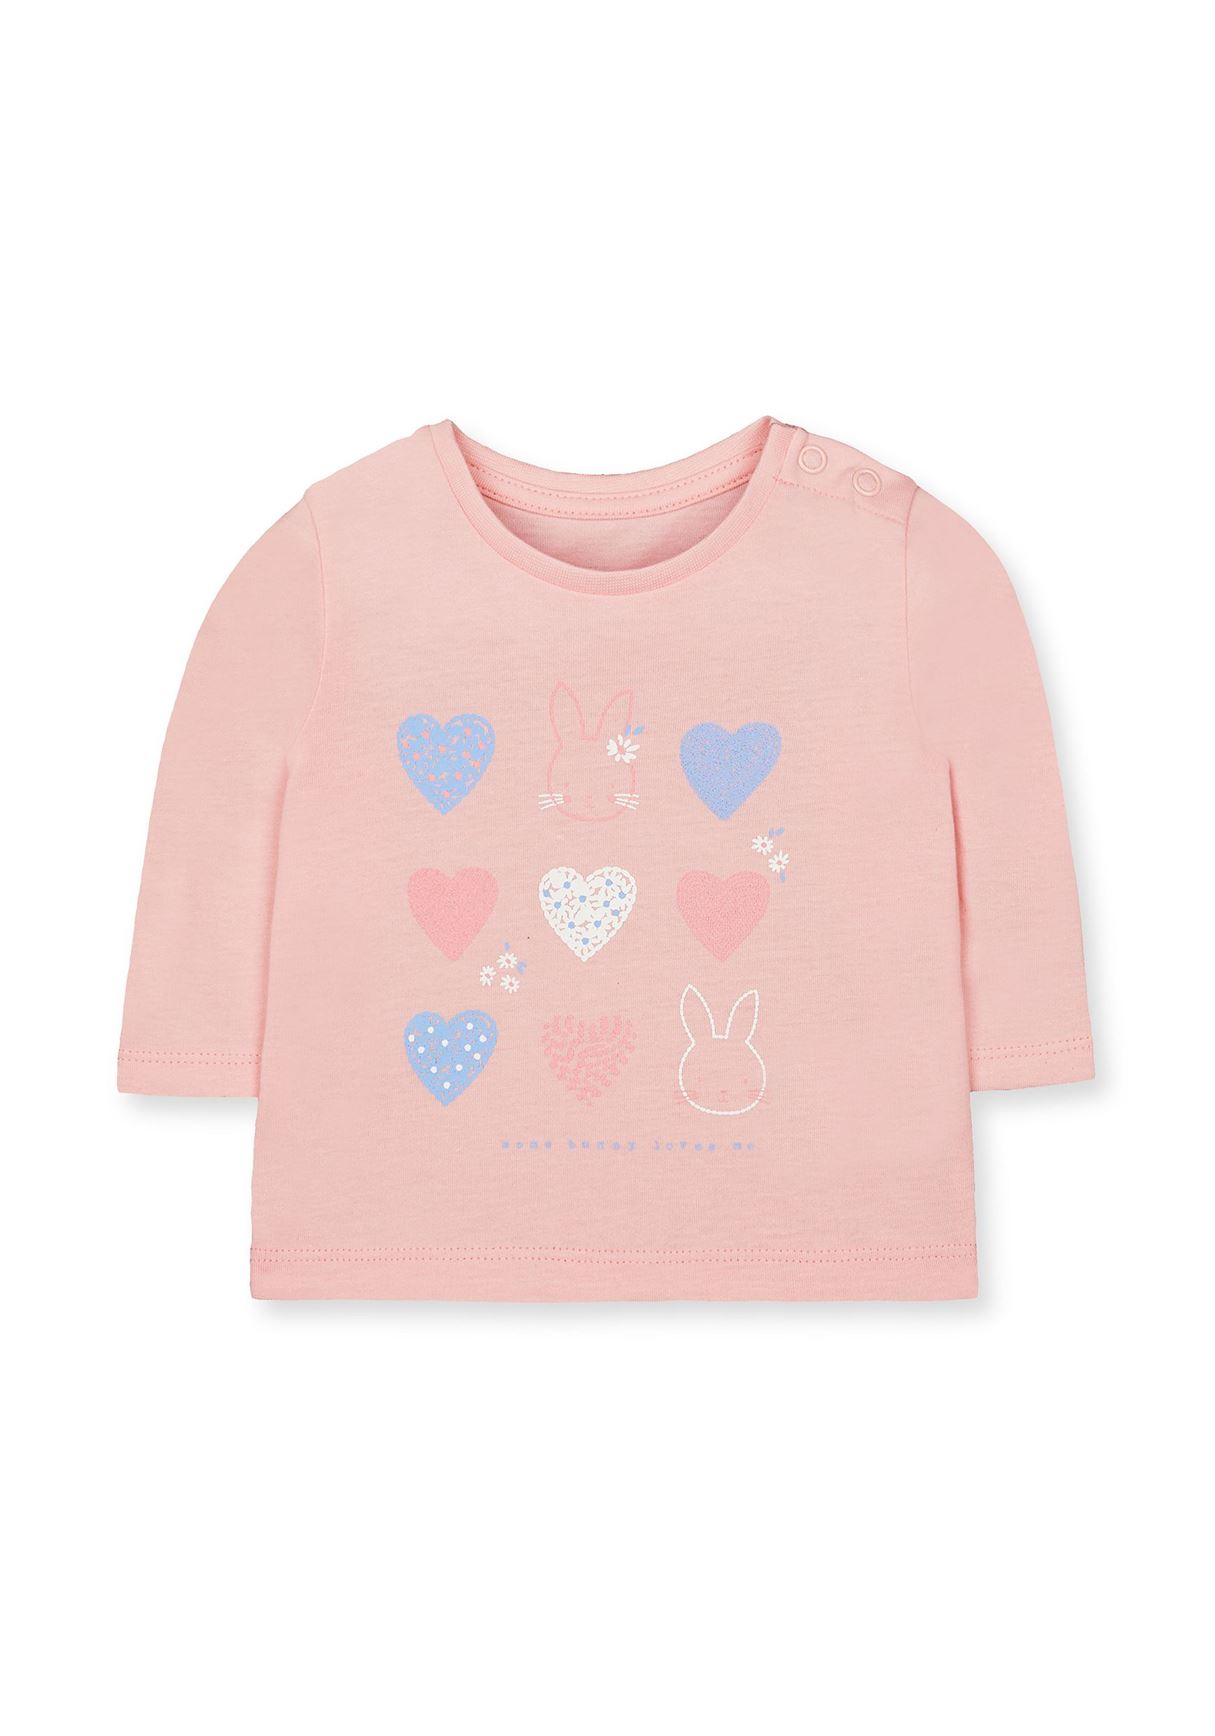 Mothercare Girls Pink Printed T-Shirt